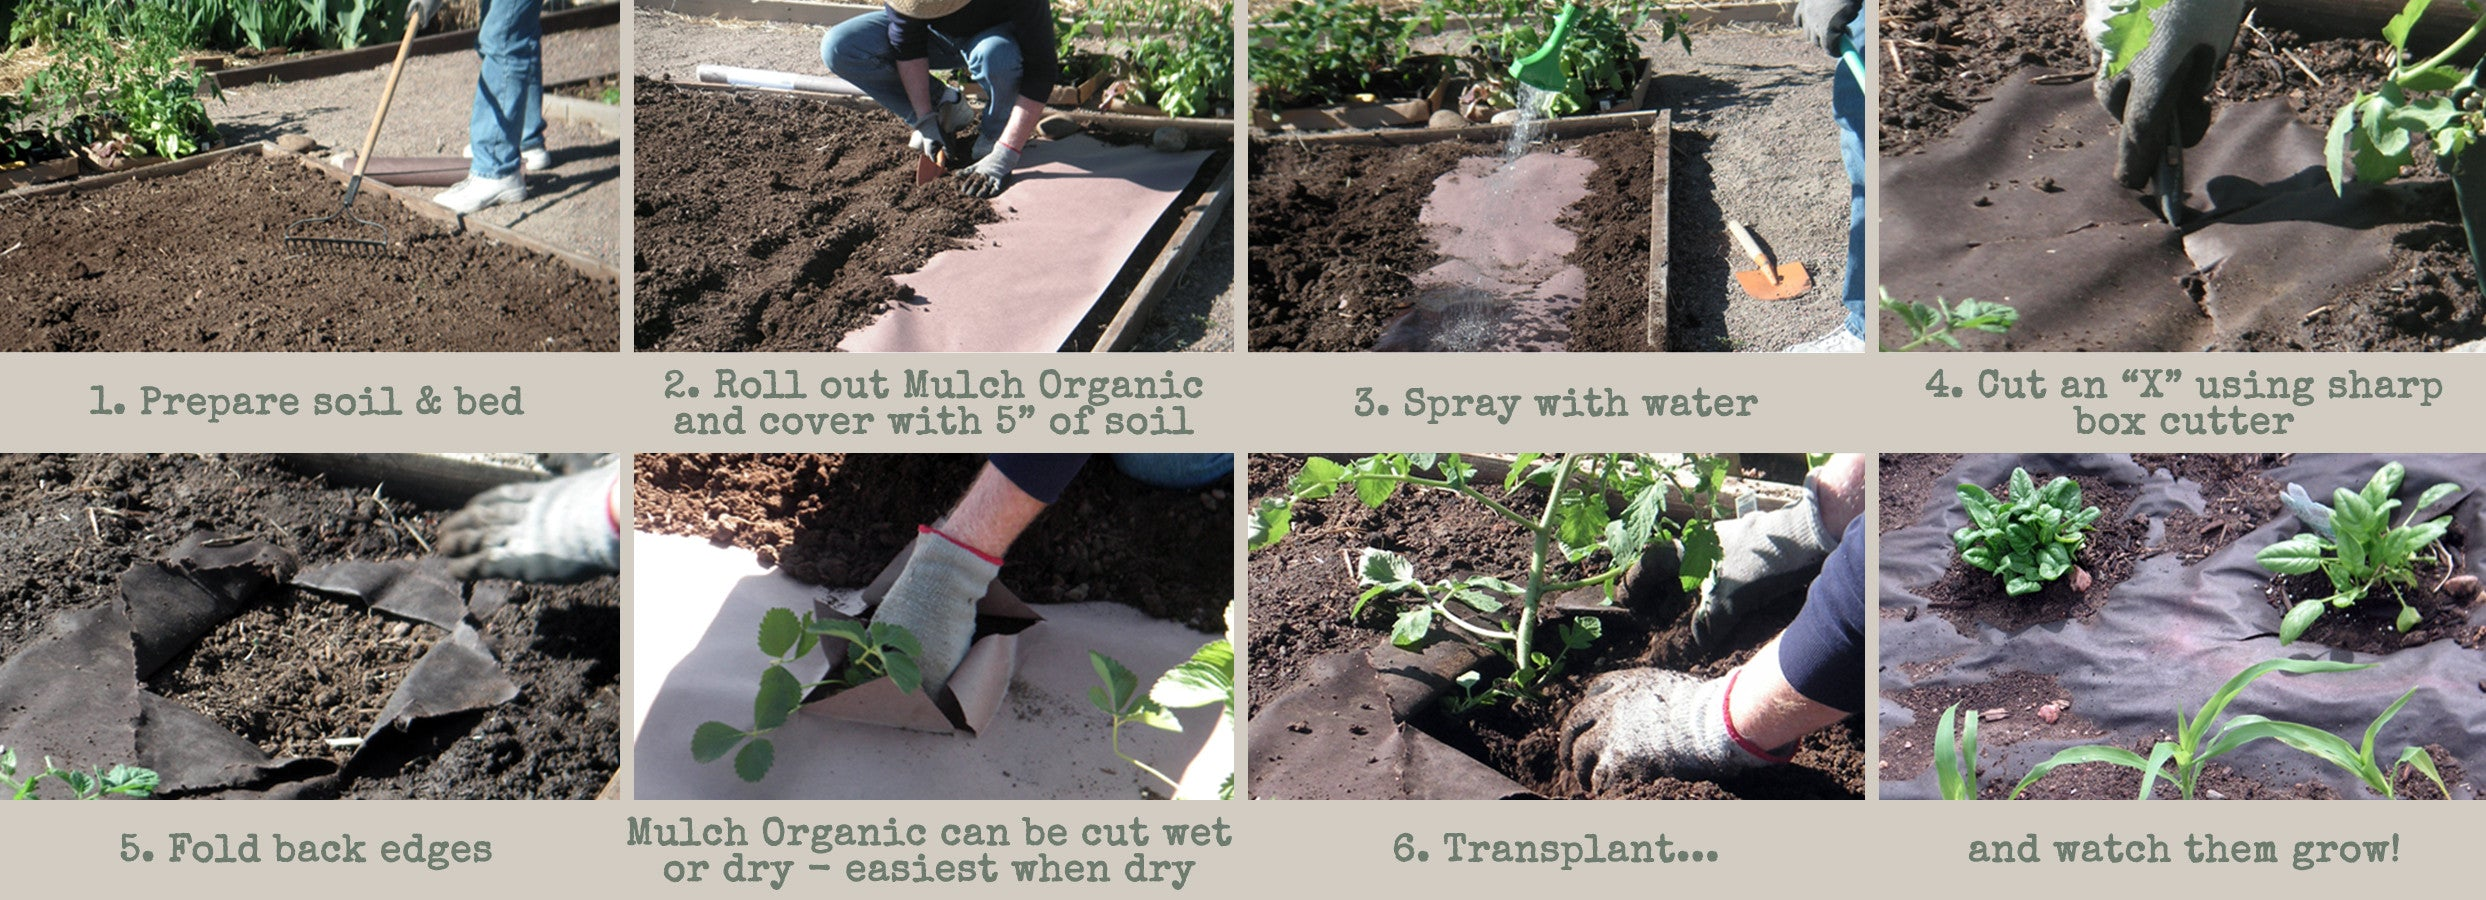 How to lay paper mulch onto the soil